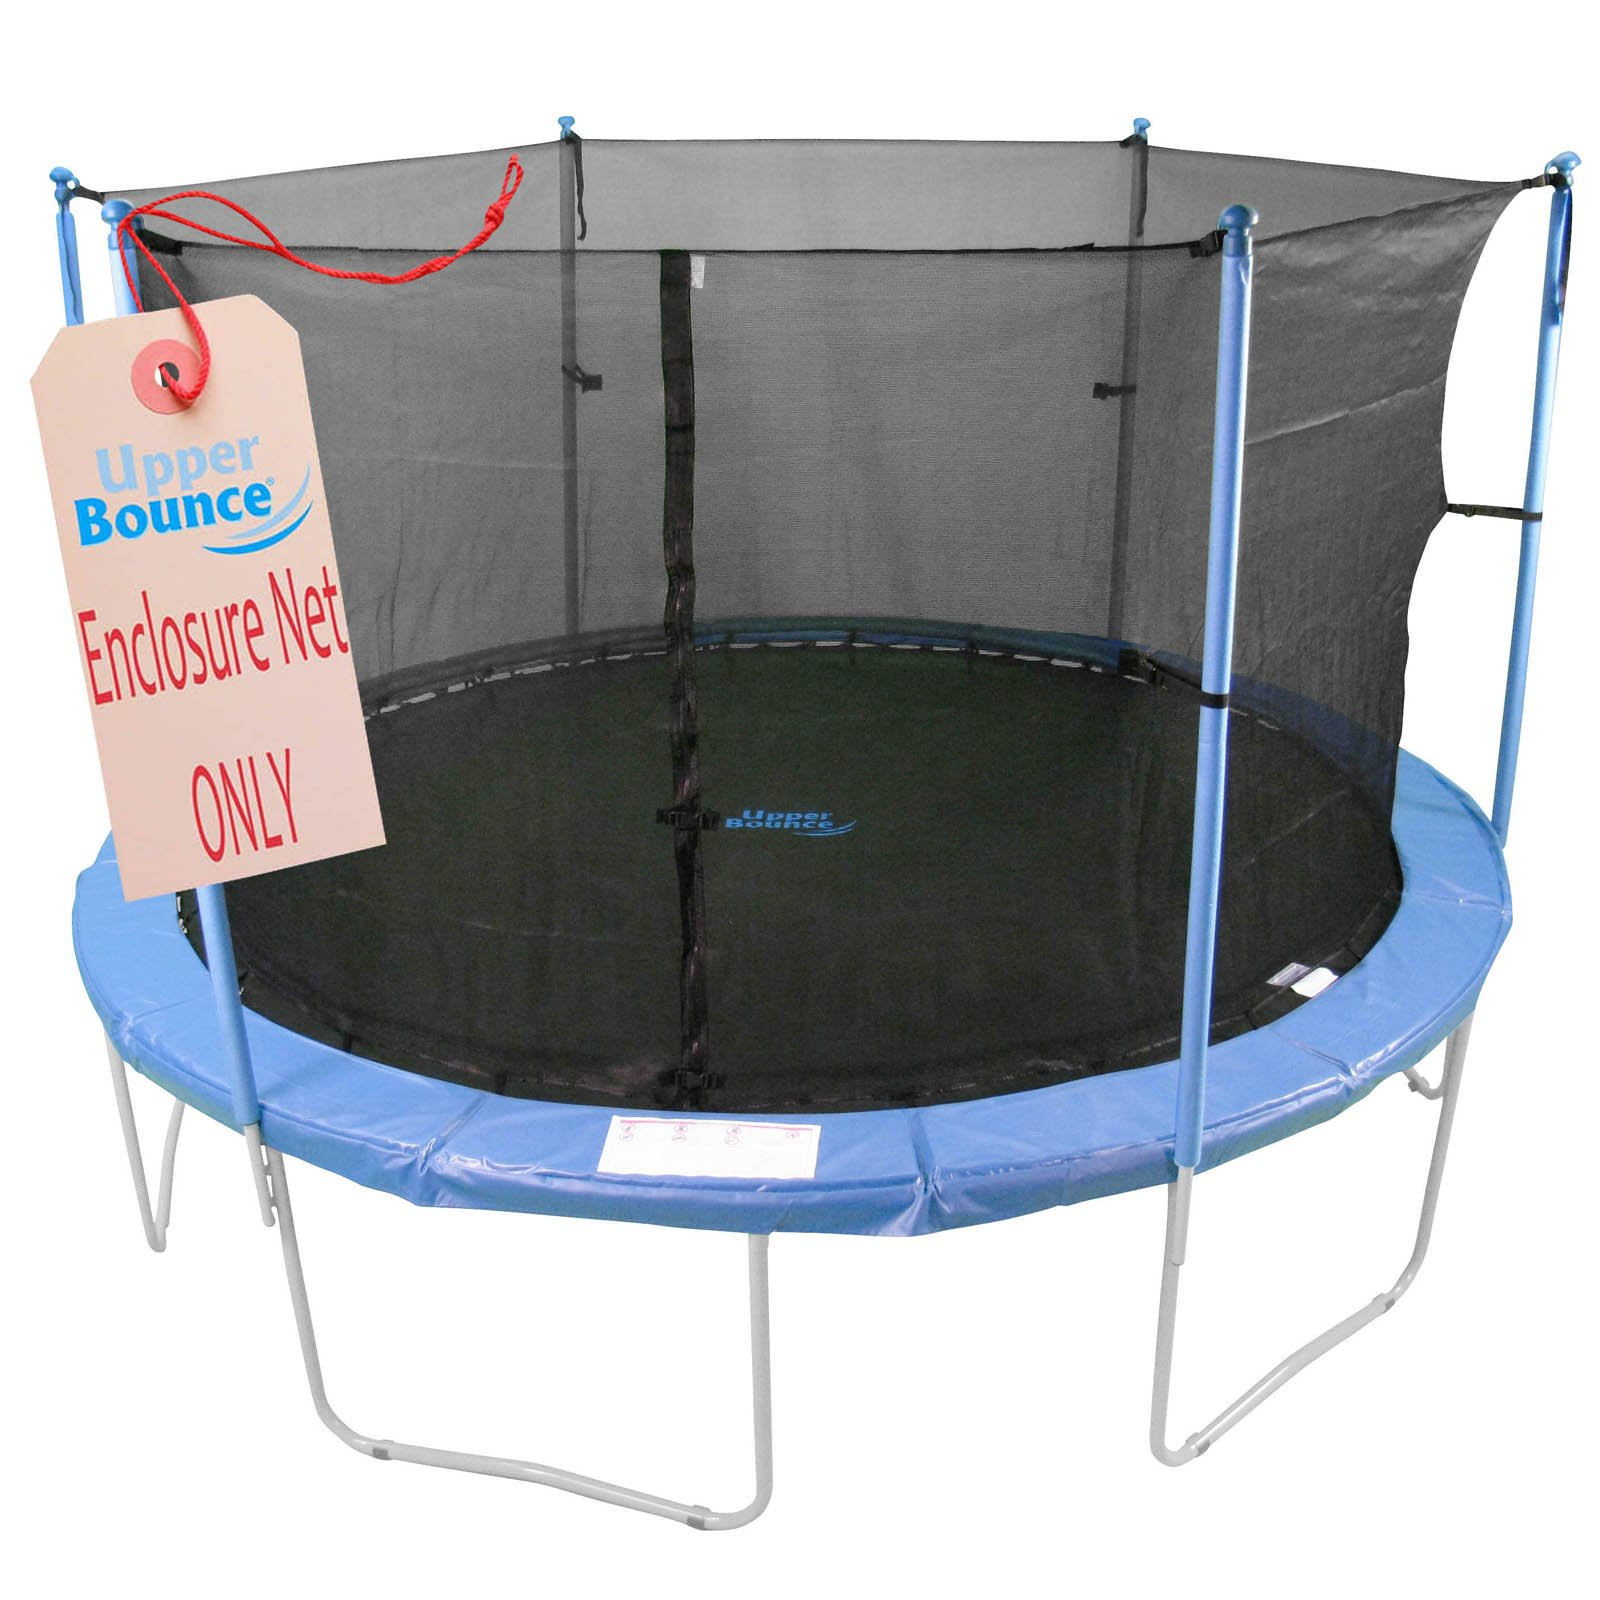 Upper Bounce 8' Trampoline Enclosure Safety Net Fits for 8 FT. Round Frames Using 4 Poles or 2 Arches (Poles not Included) by Upper Bounce